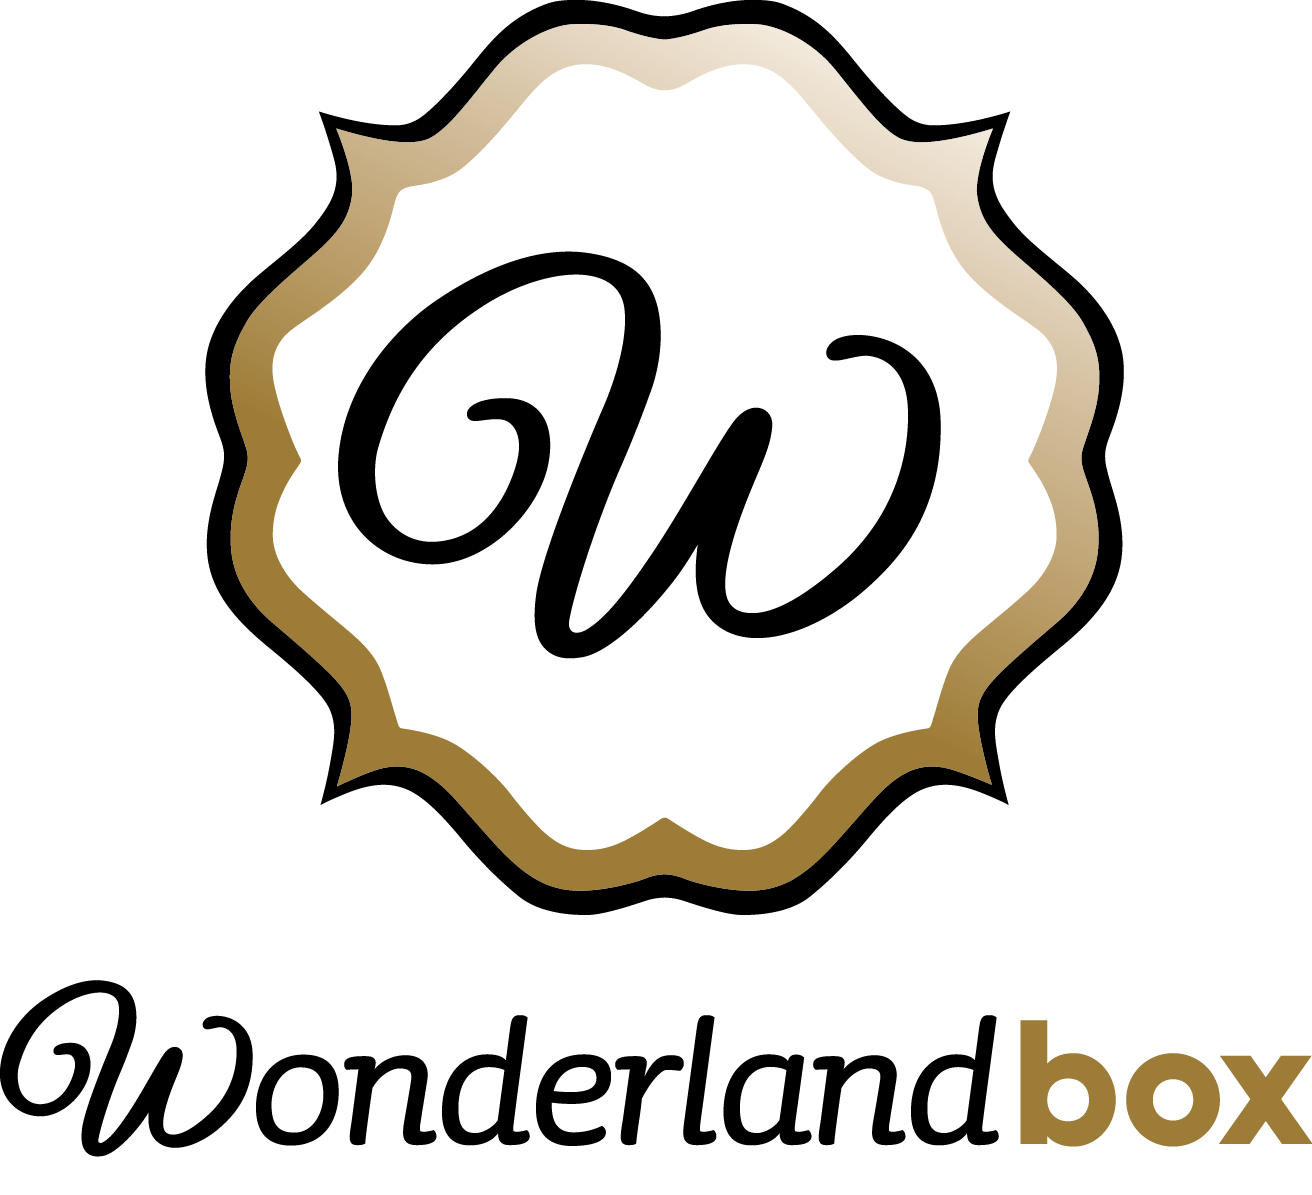 Logo Wonderlandbox - Box de Beleza